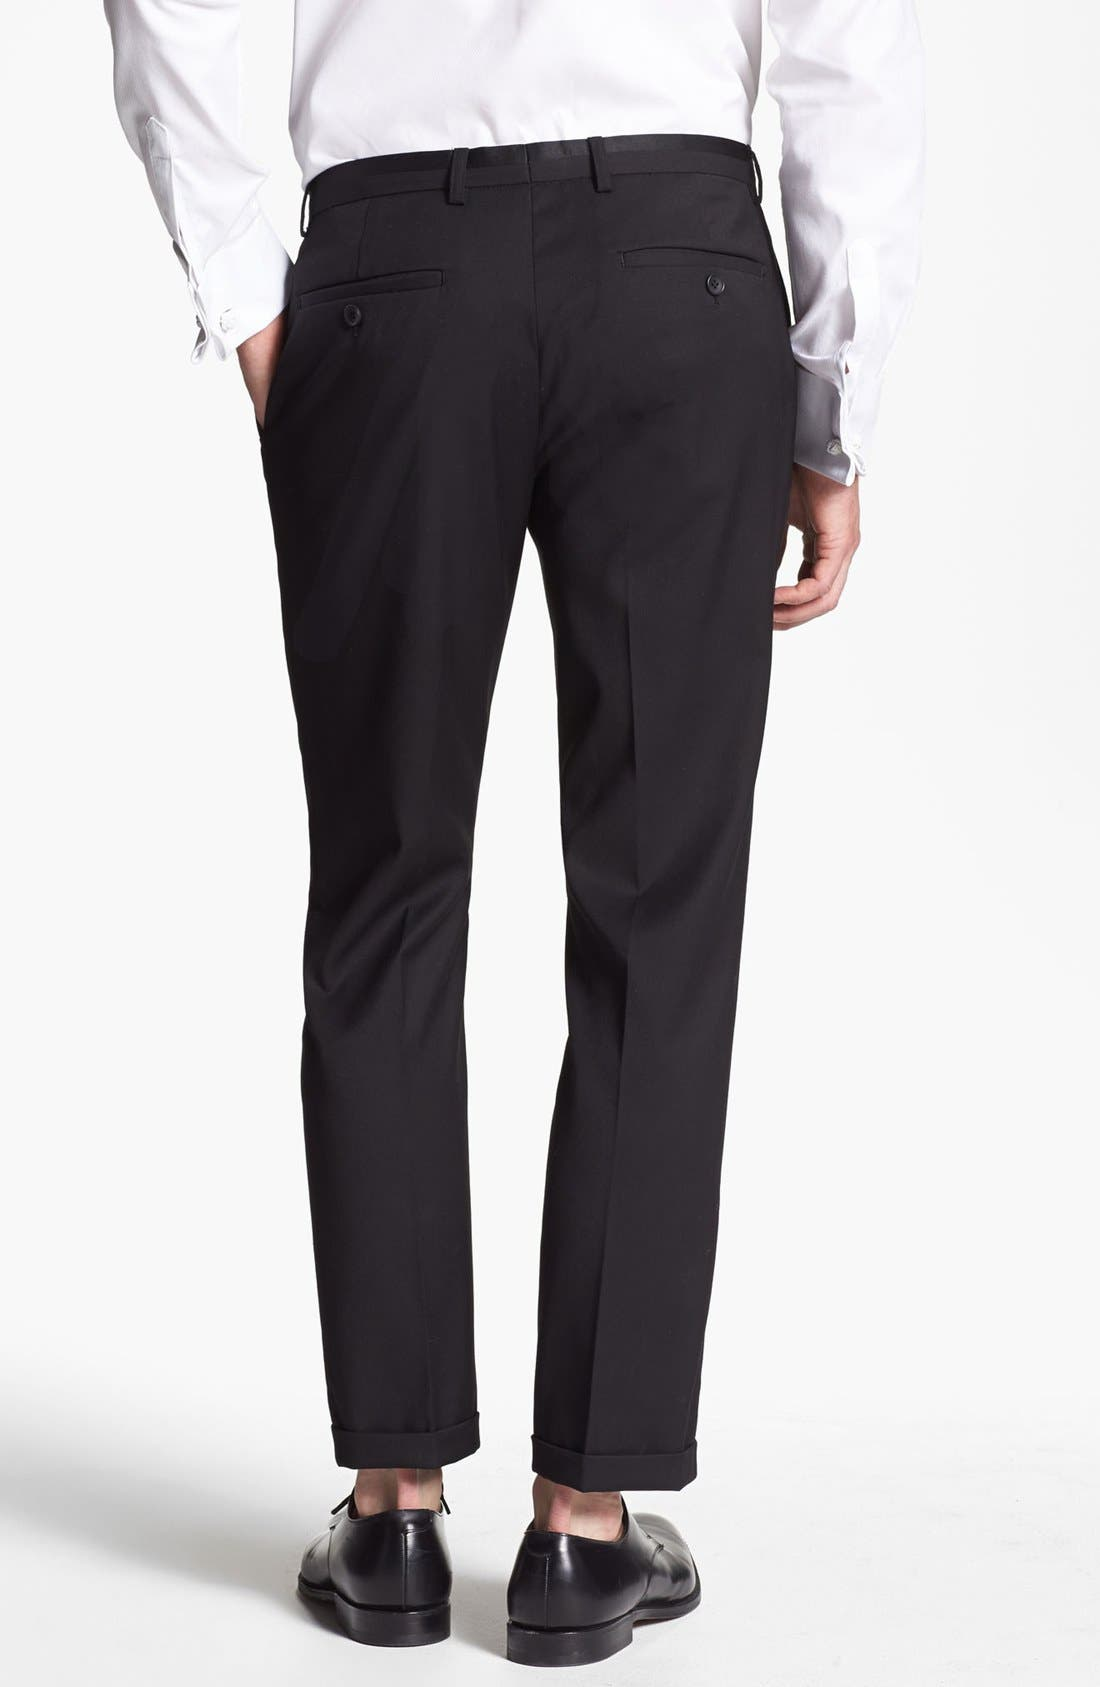 TOPMAN,                             Skinny Fit Tuxedo Trousers,                             Alternate thumbnail 2, color,                             001